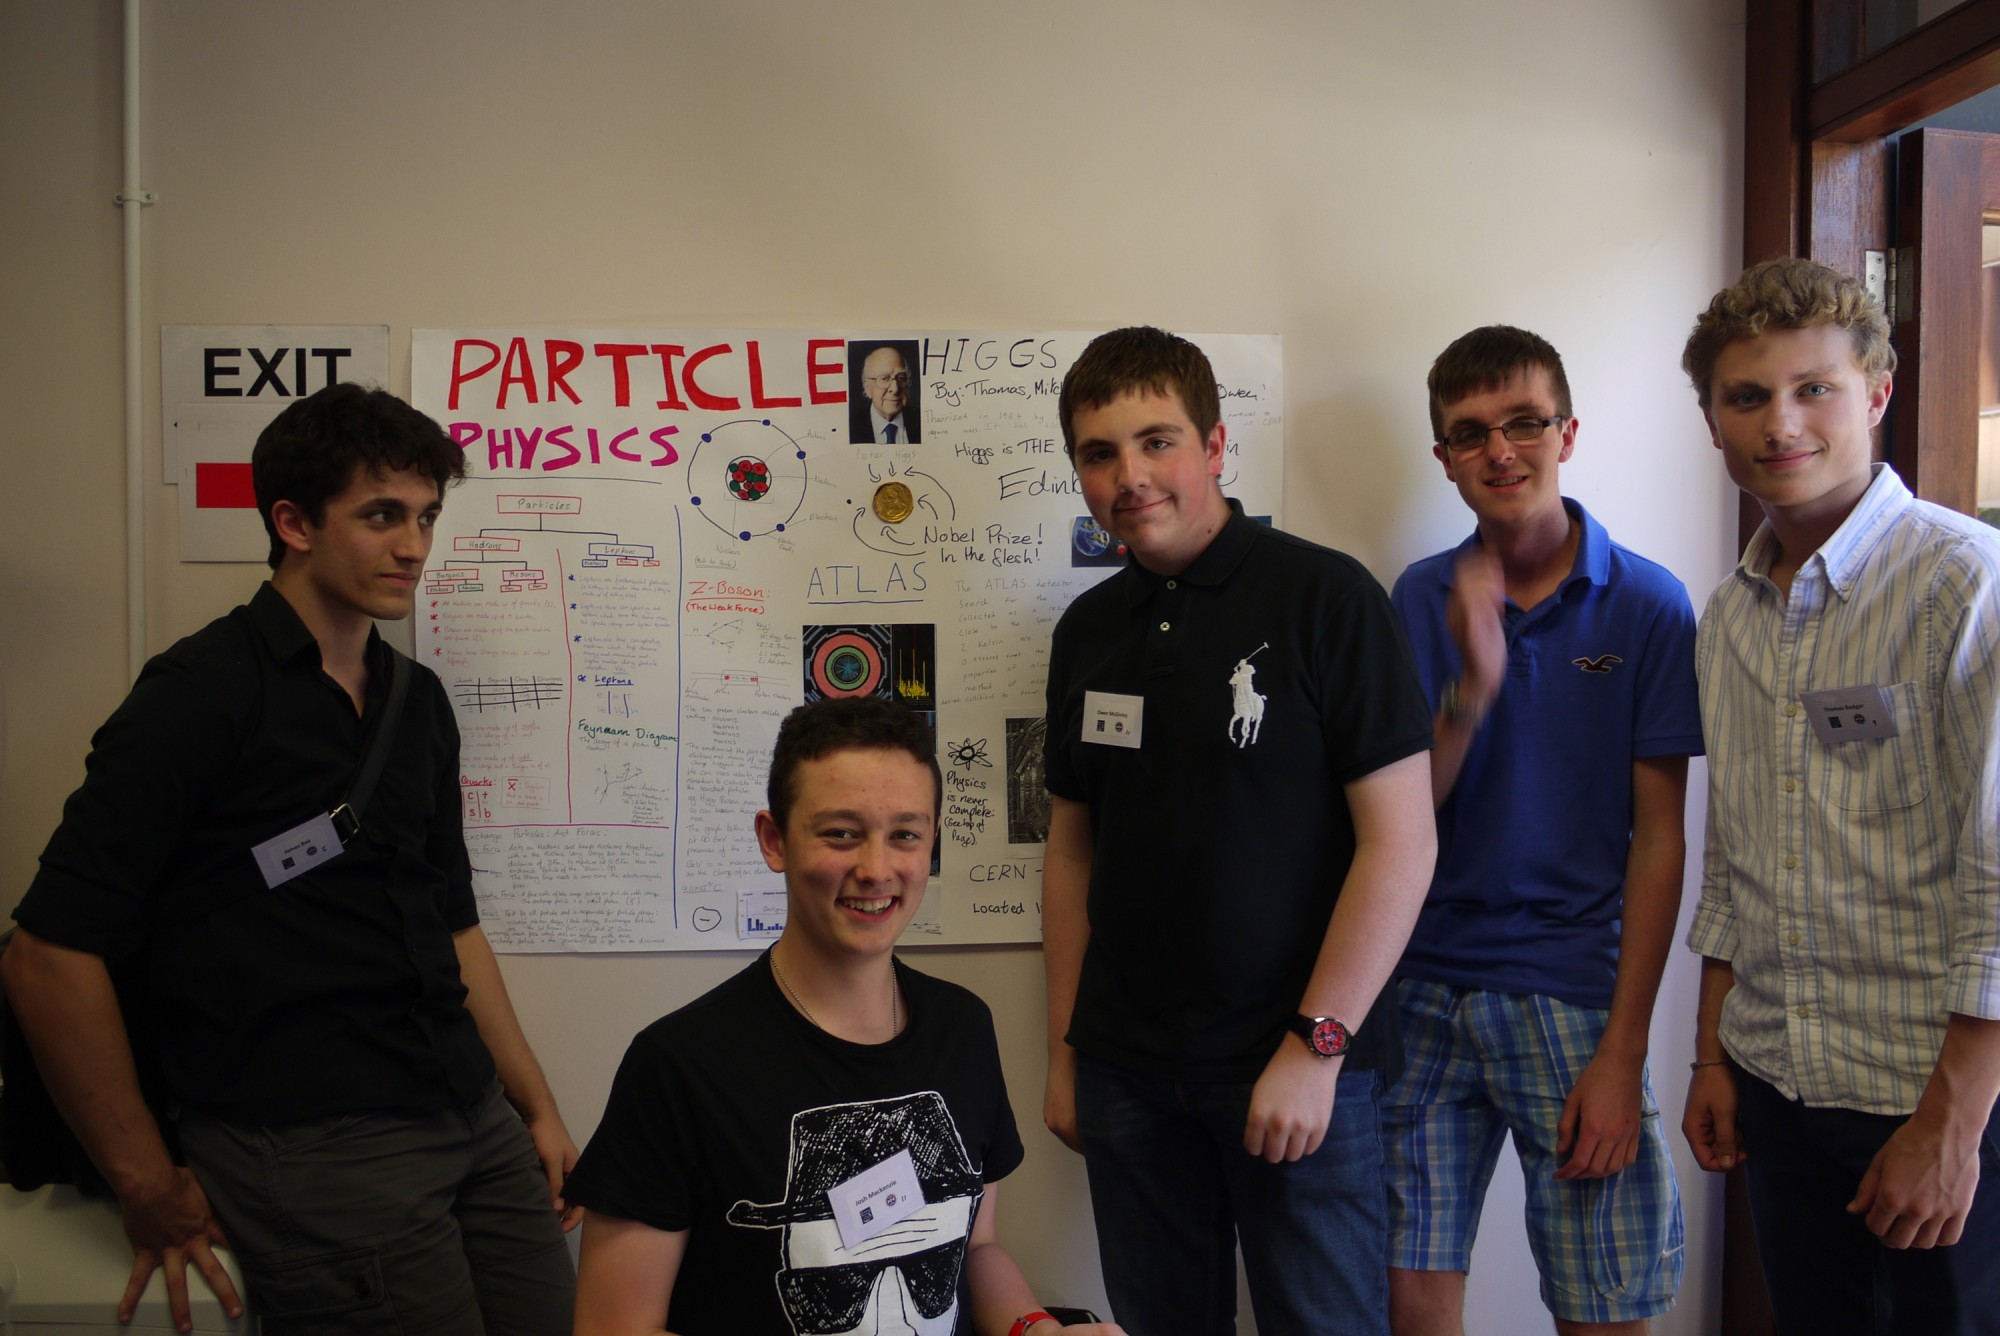 The particle physics team in front of their poster.